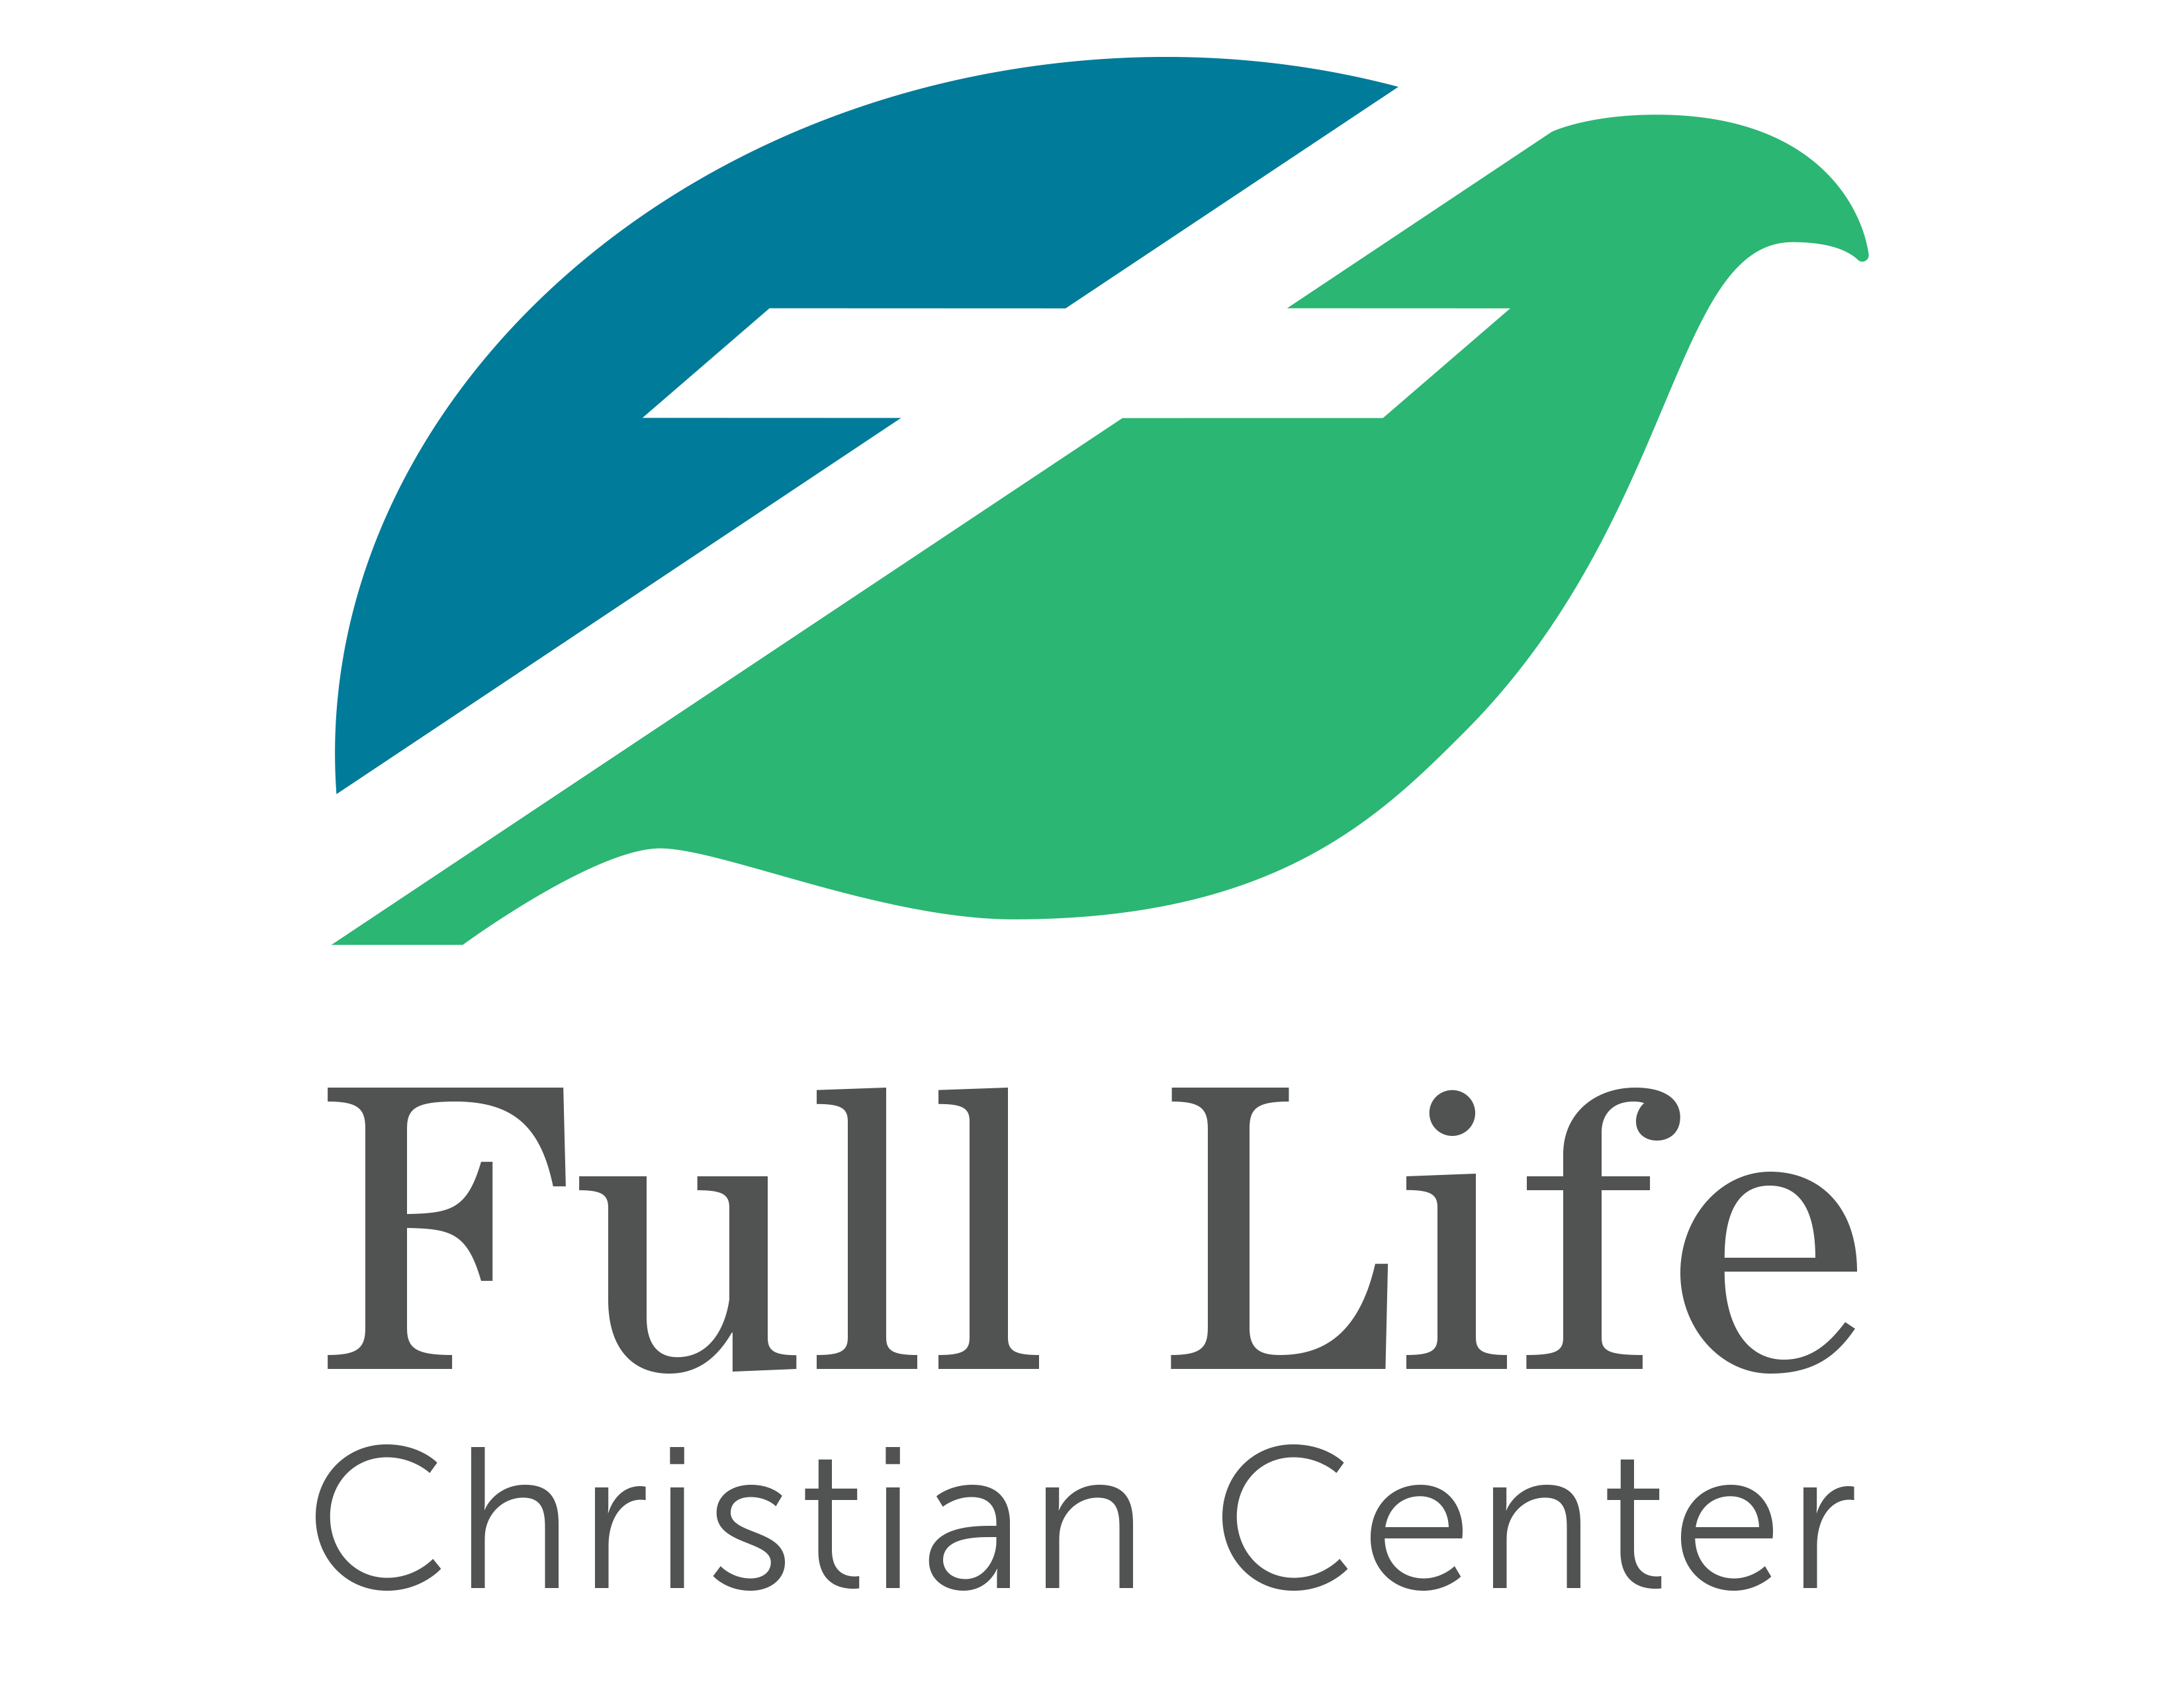 San Francisco Full Life Christian Center